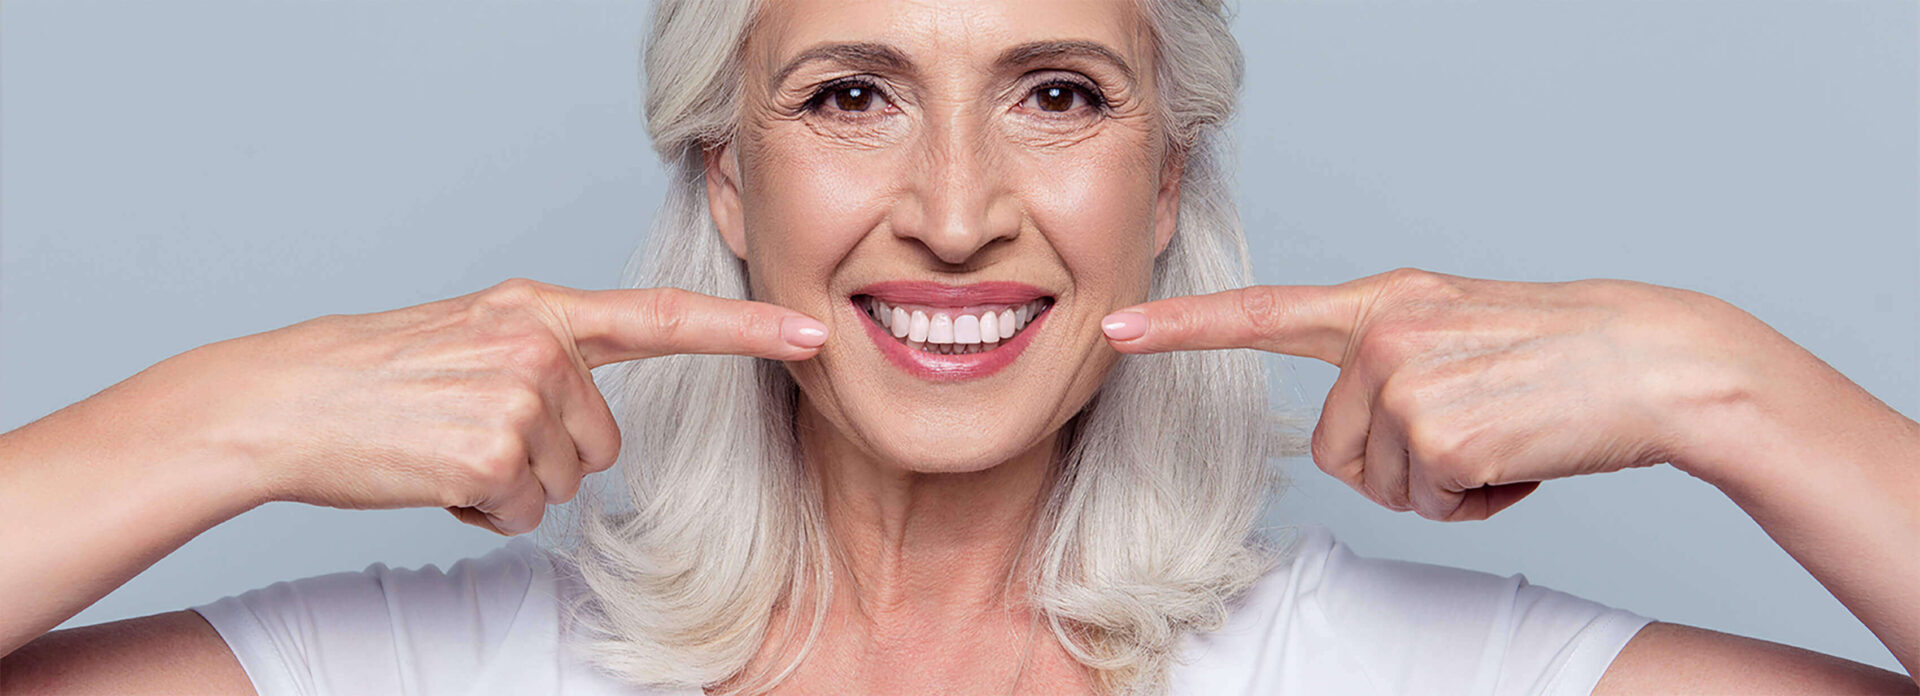 Dentures header hero image